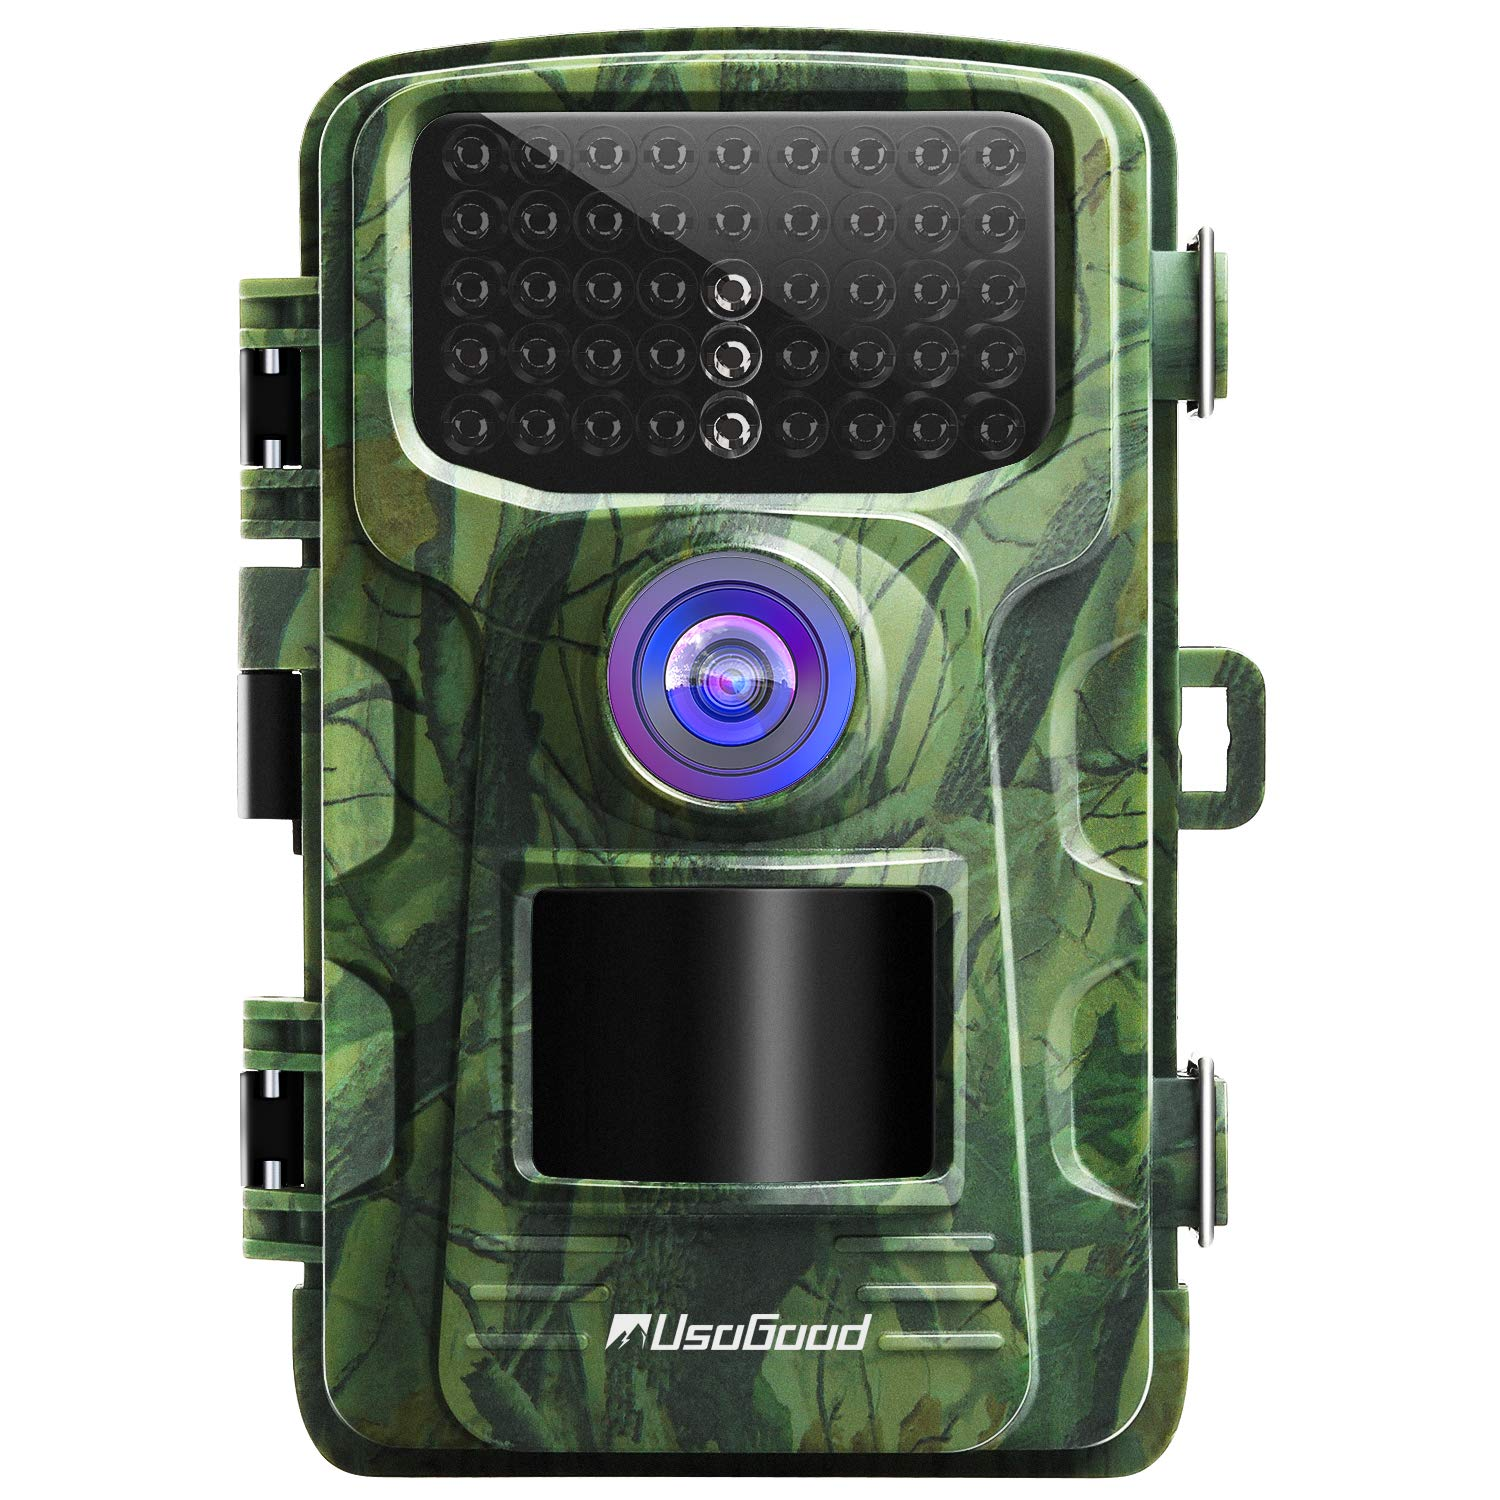 usogood Trail Camera 14MP 1080P No Glow Game Hunting Camera with Night Vision Motion Activated IP66 Waterproof 2.4'' LCD for Outdoor Wildlife, Garden, Animal Scouting and Home Security Surveillance by usogood